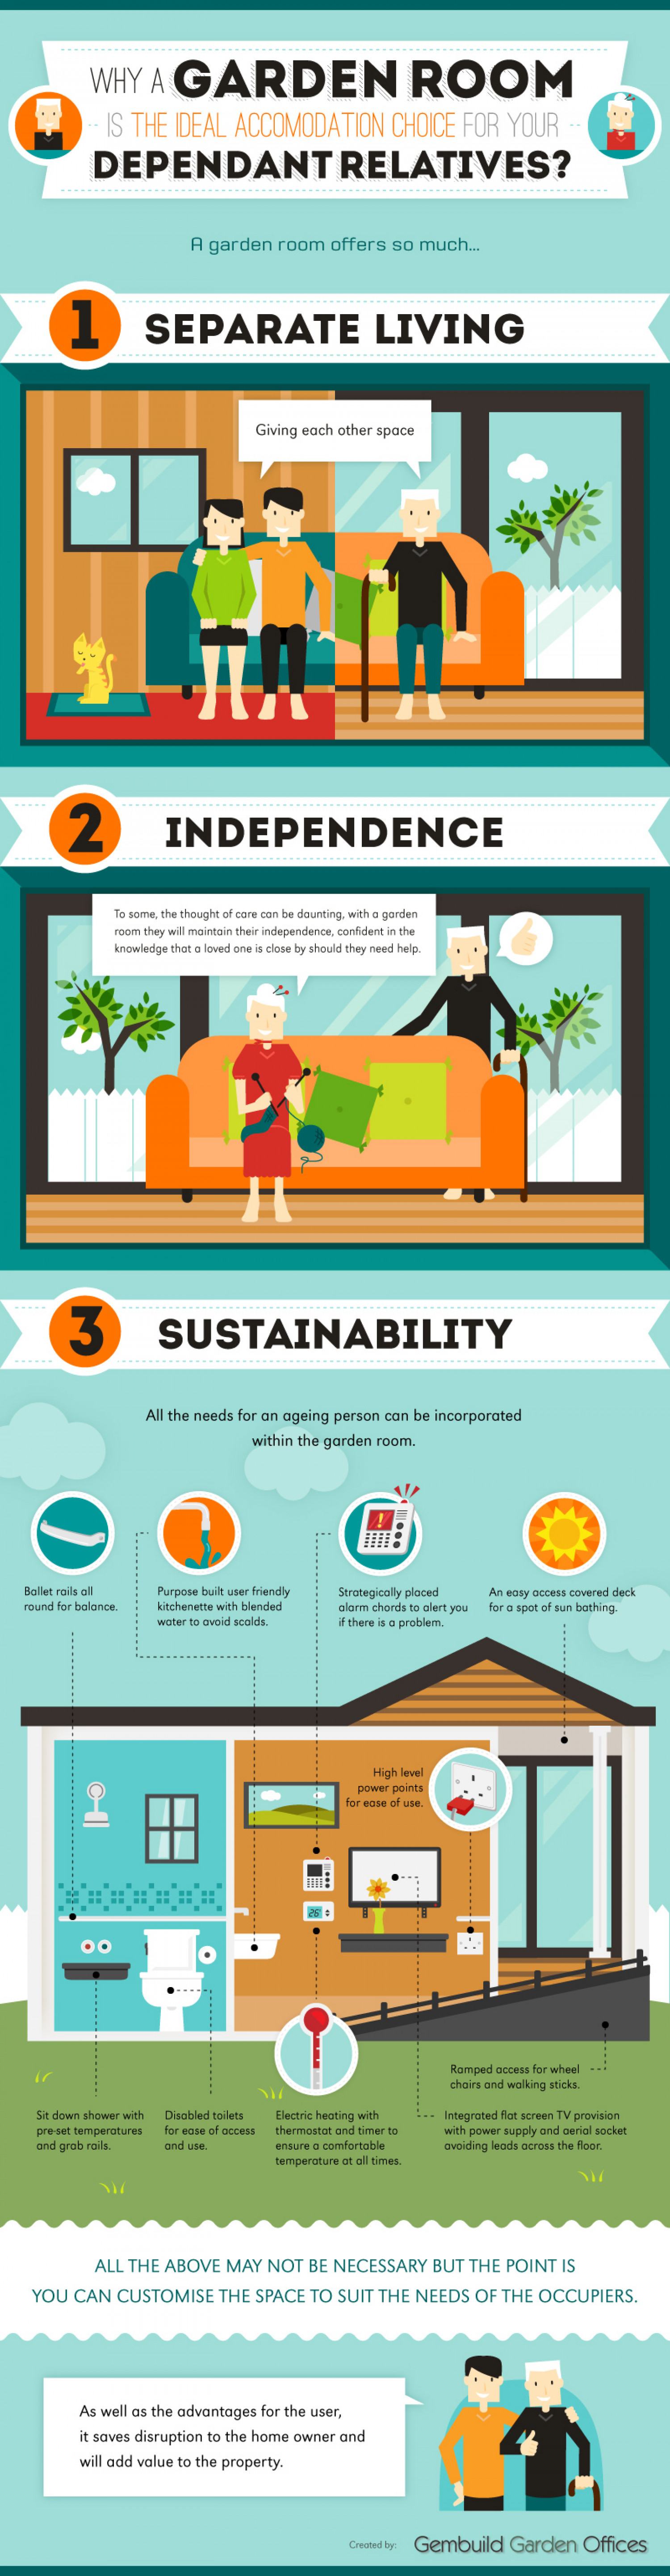 Why a Garden Room is the ideal accommodation choice for your dependant relatives Infographic